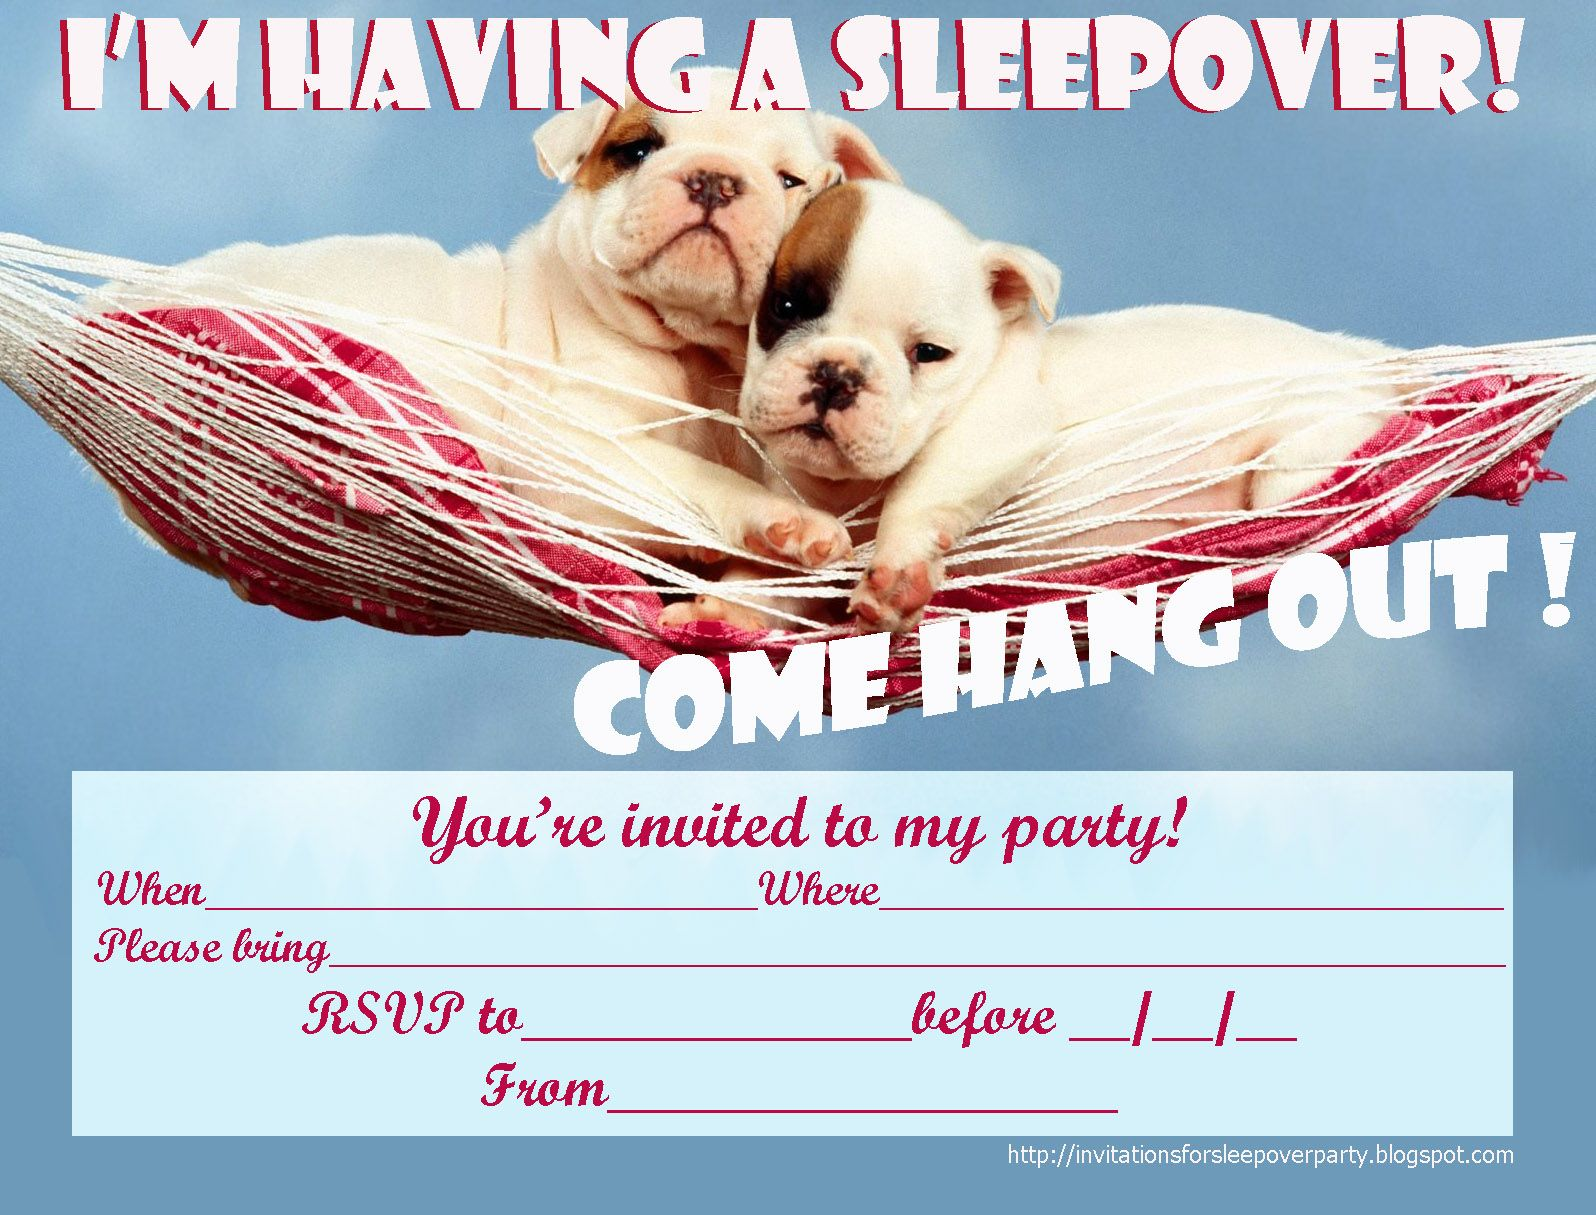 Free printable sleepover party invitations hundreds of slumber free printable sleepover party invitations hundreds of slumber party invitations sorted into categories for both monicamarmolfo Image collections